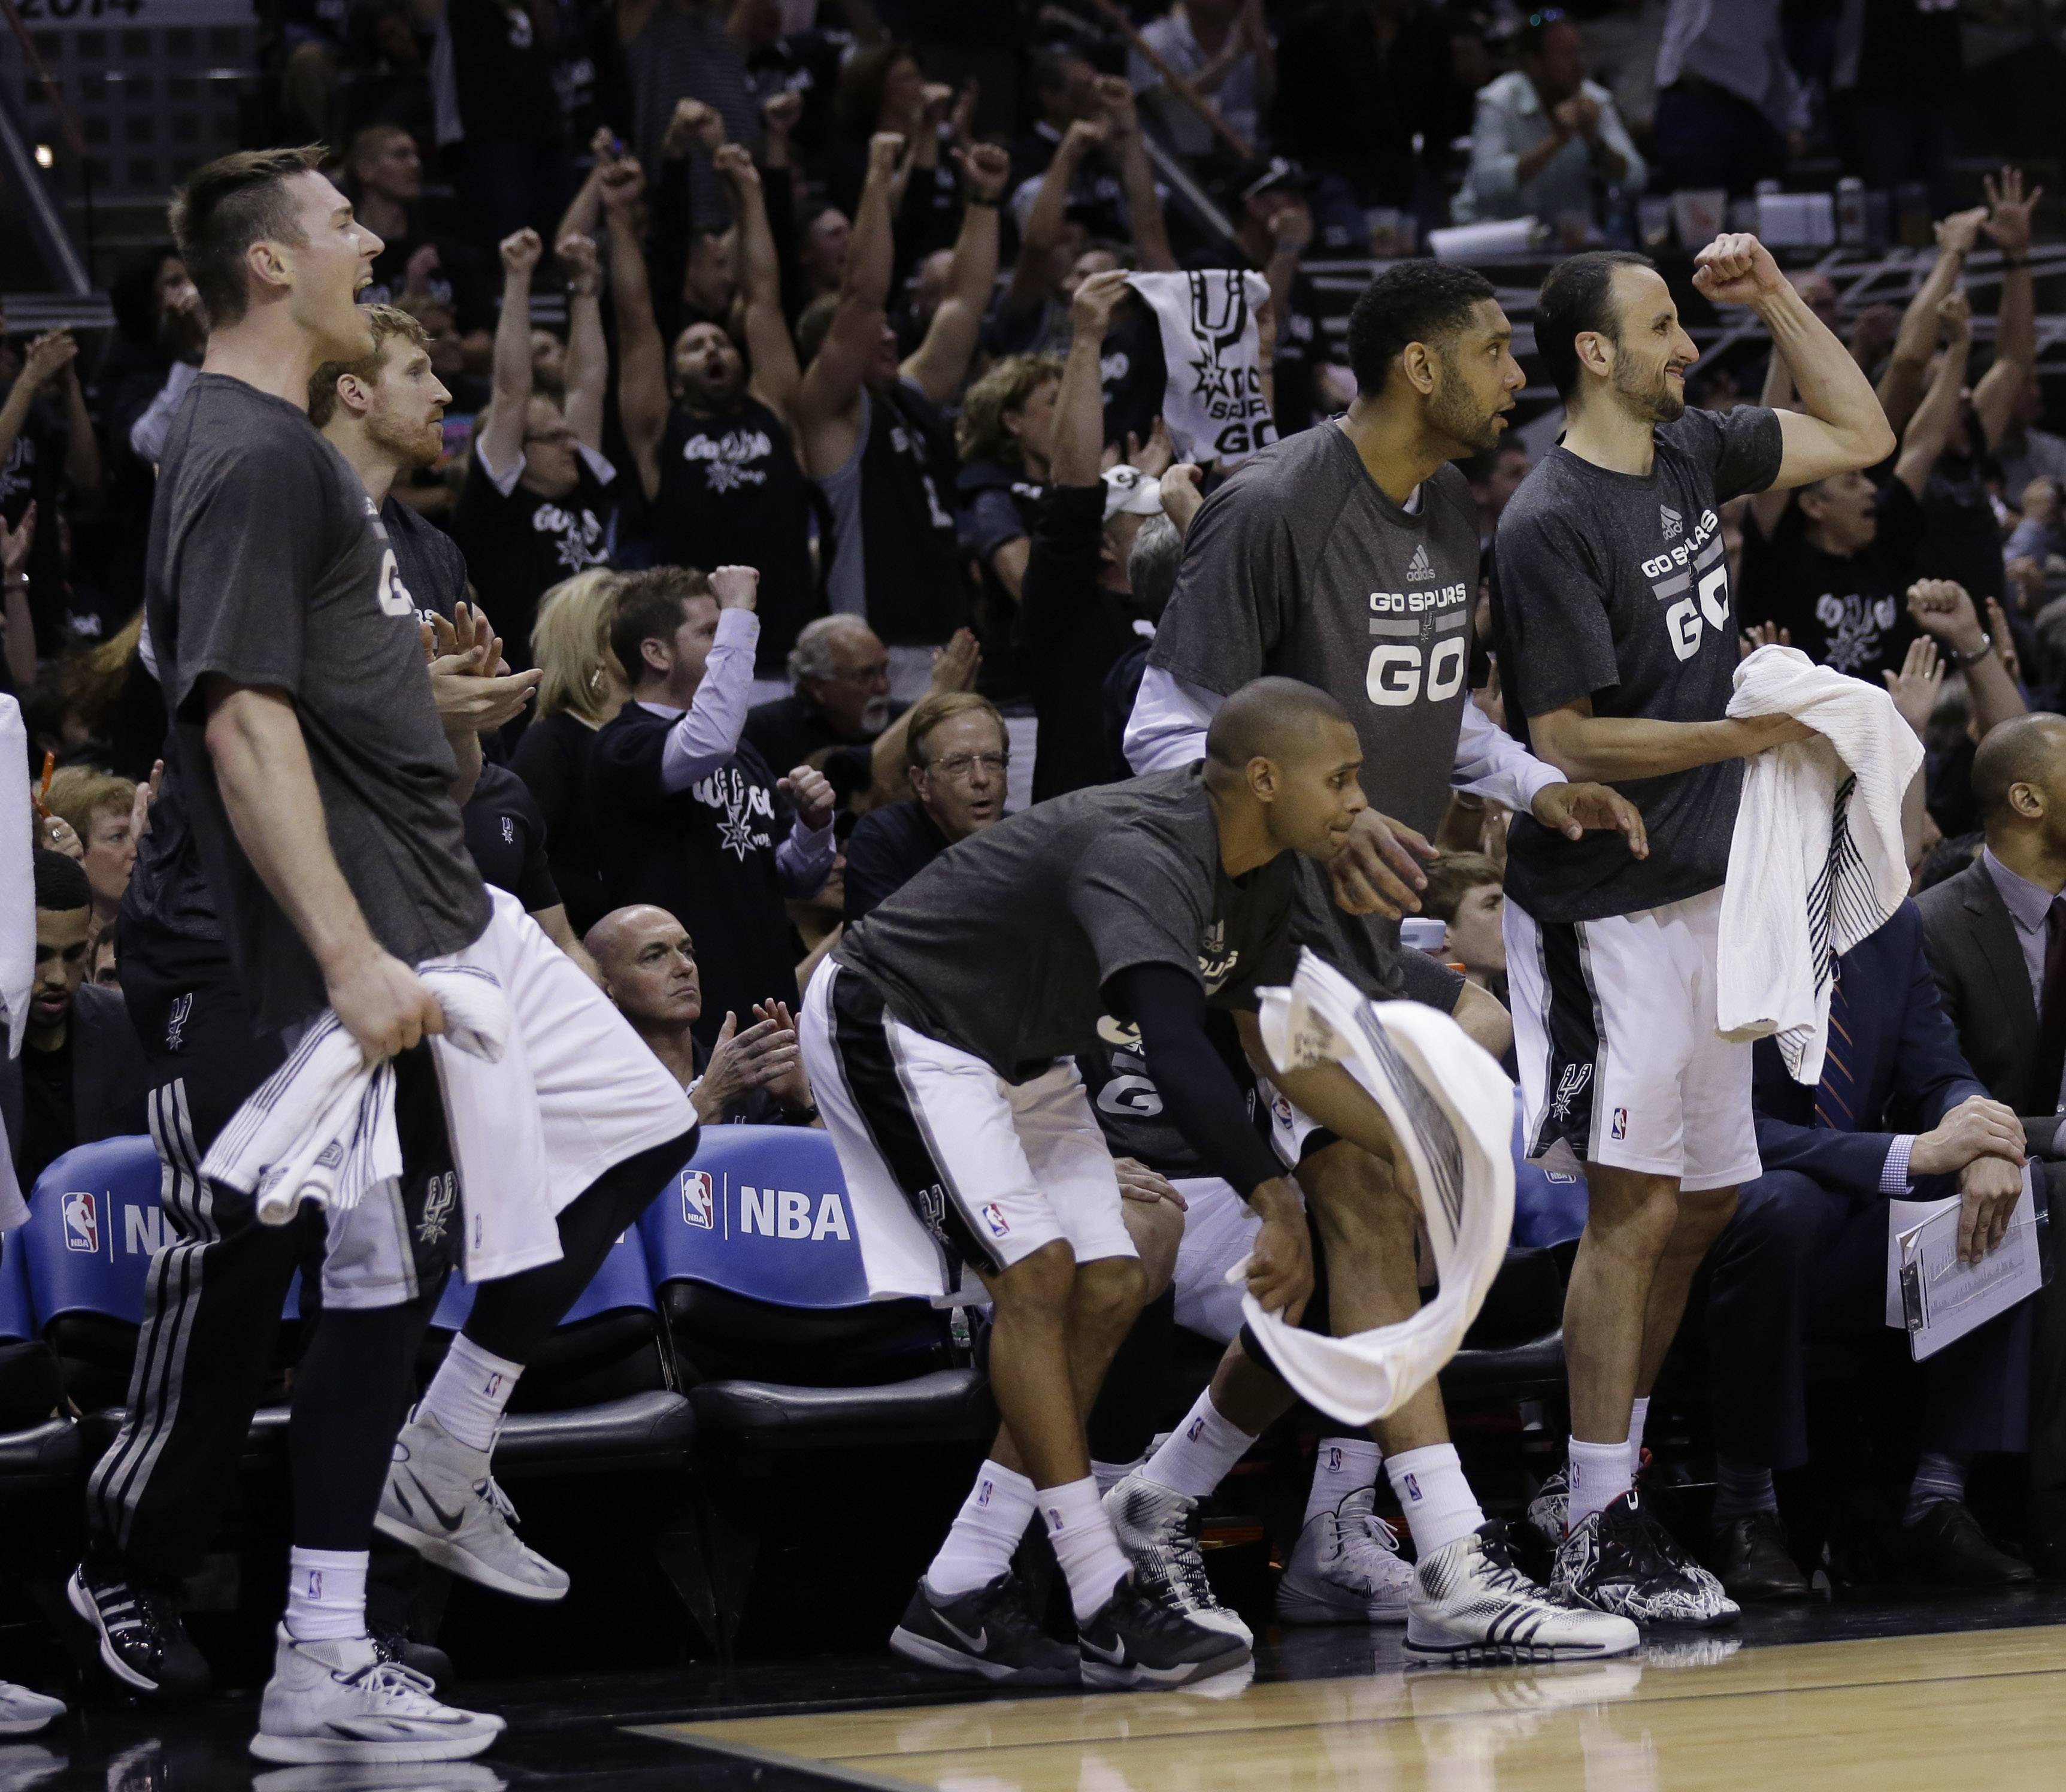 San Antonio Spurs player, from left, Aron Baynes, Patty Mills, Tim Duncan and Manu Ginobili, celebrate from the bench during the second half of Game 1 of a Western Conference finals NBA basketball playoff series Monday against the Oklahoma City Thunder in San Antonio. San Antonio won 122-105.